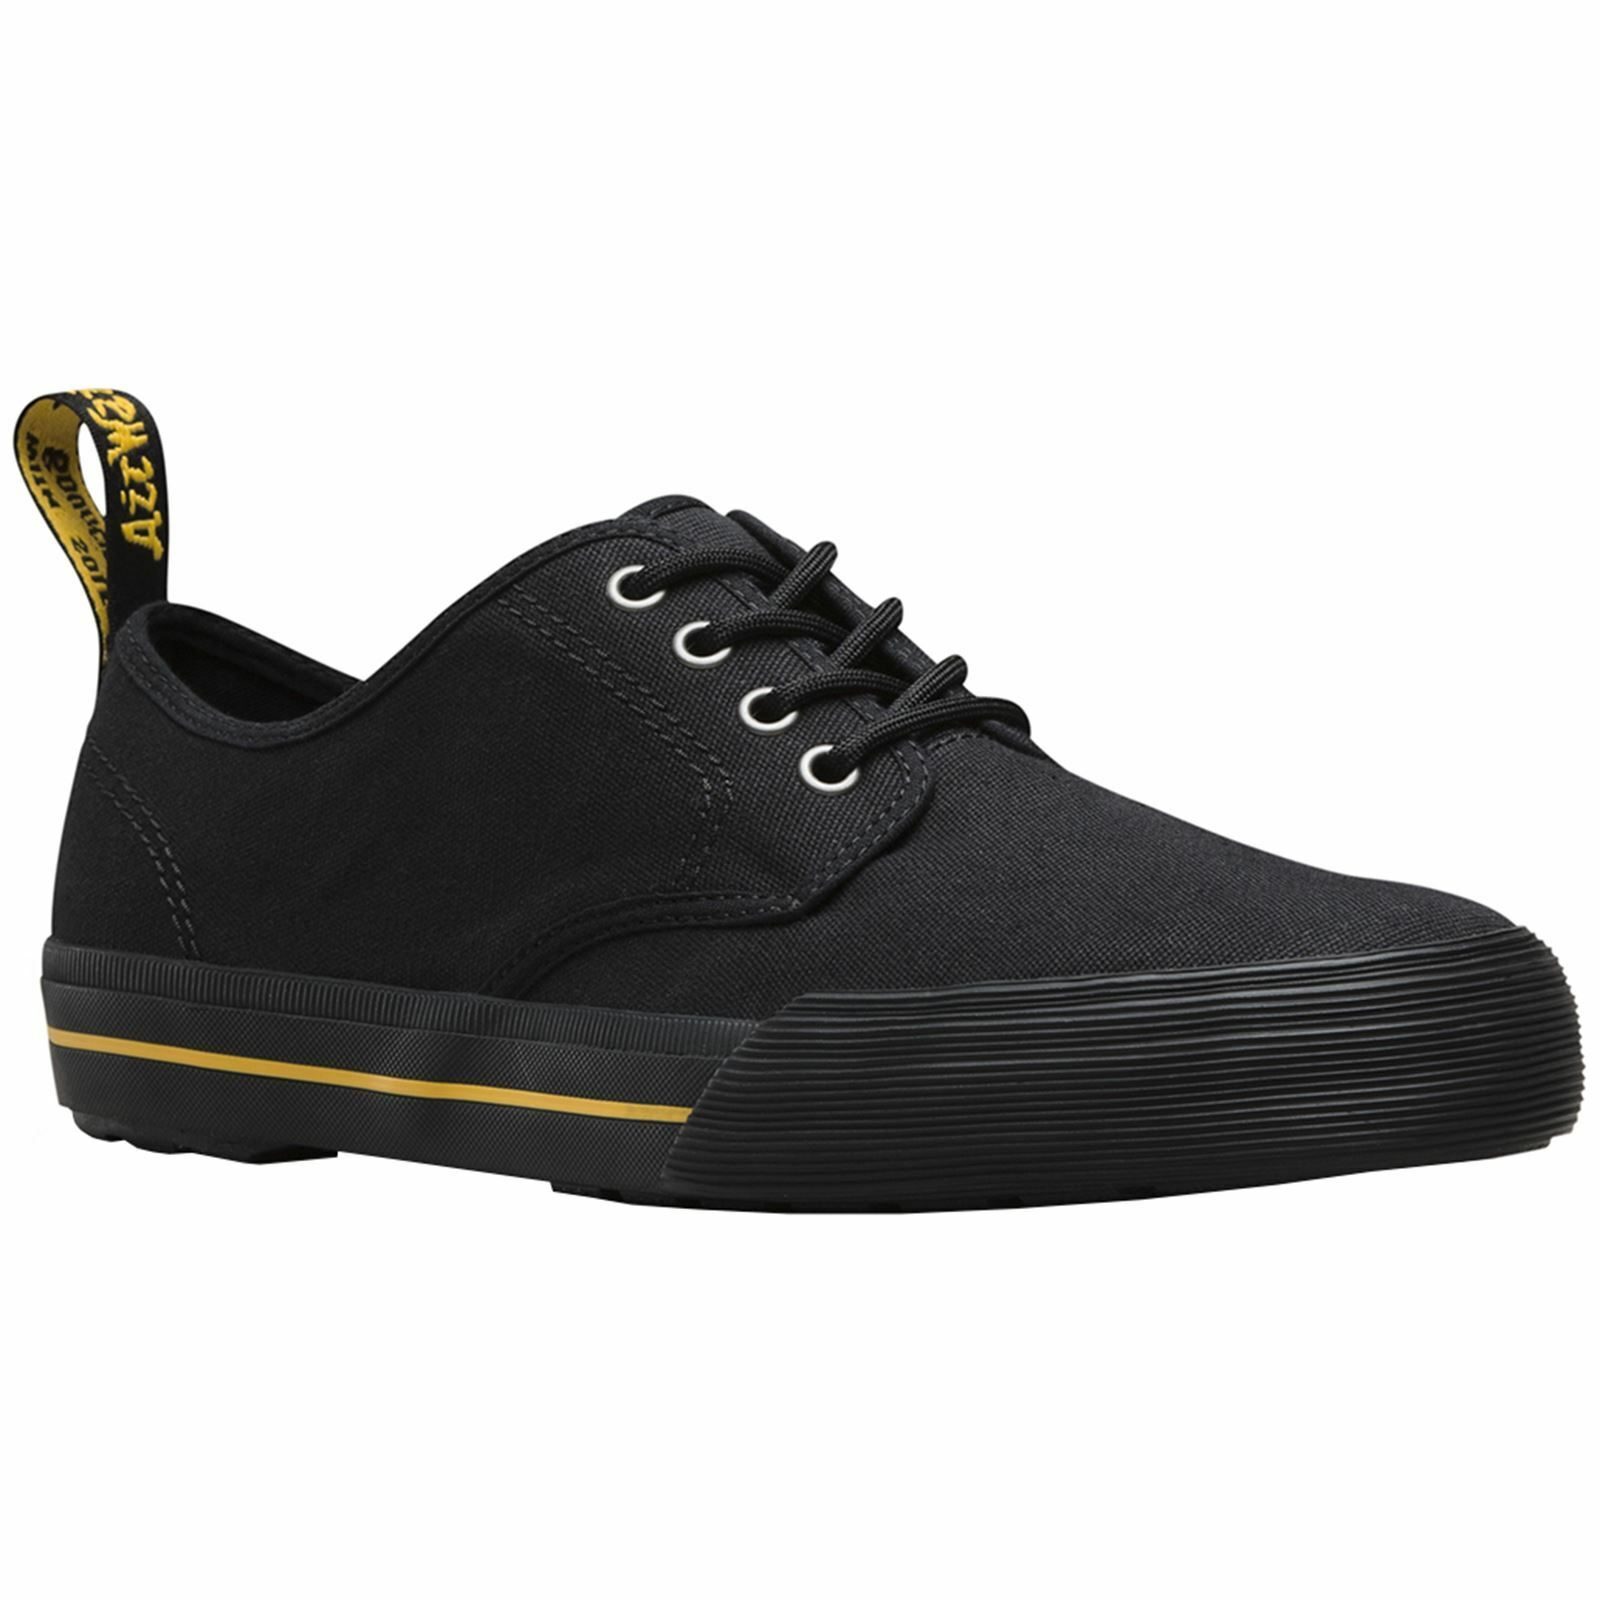 Dr.Martens Pressler 4-Eyelet Black Women Canvas Casual Low-top Sneakers Trainers